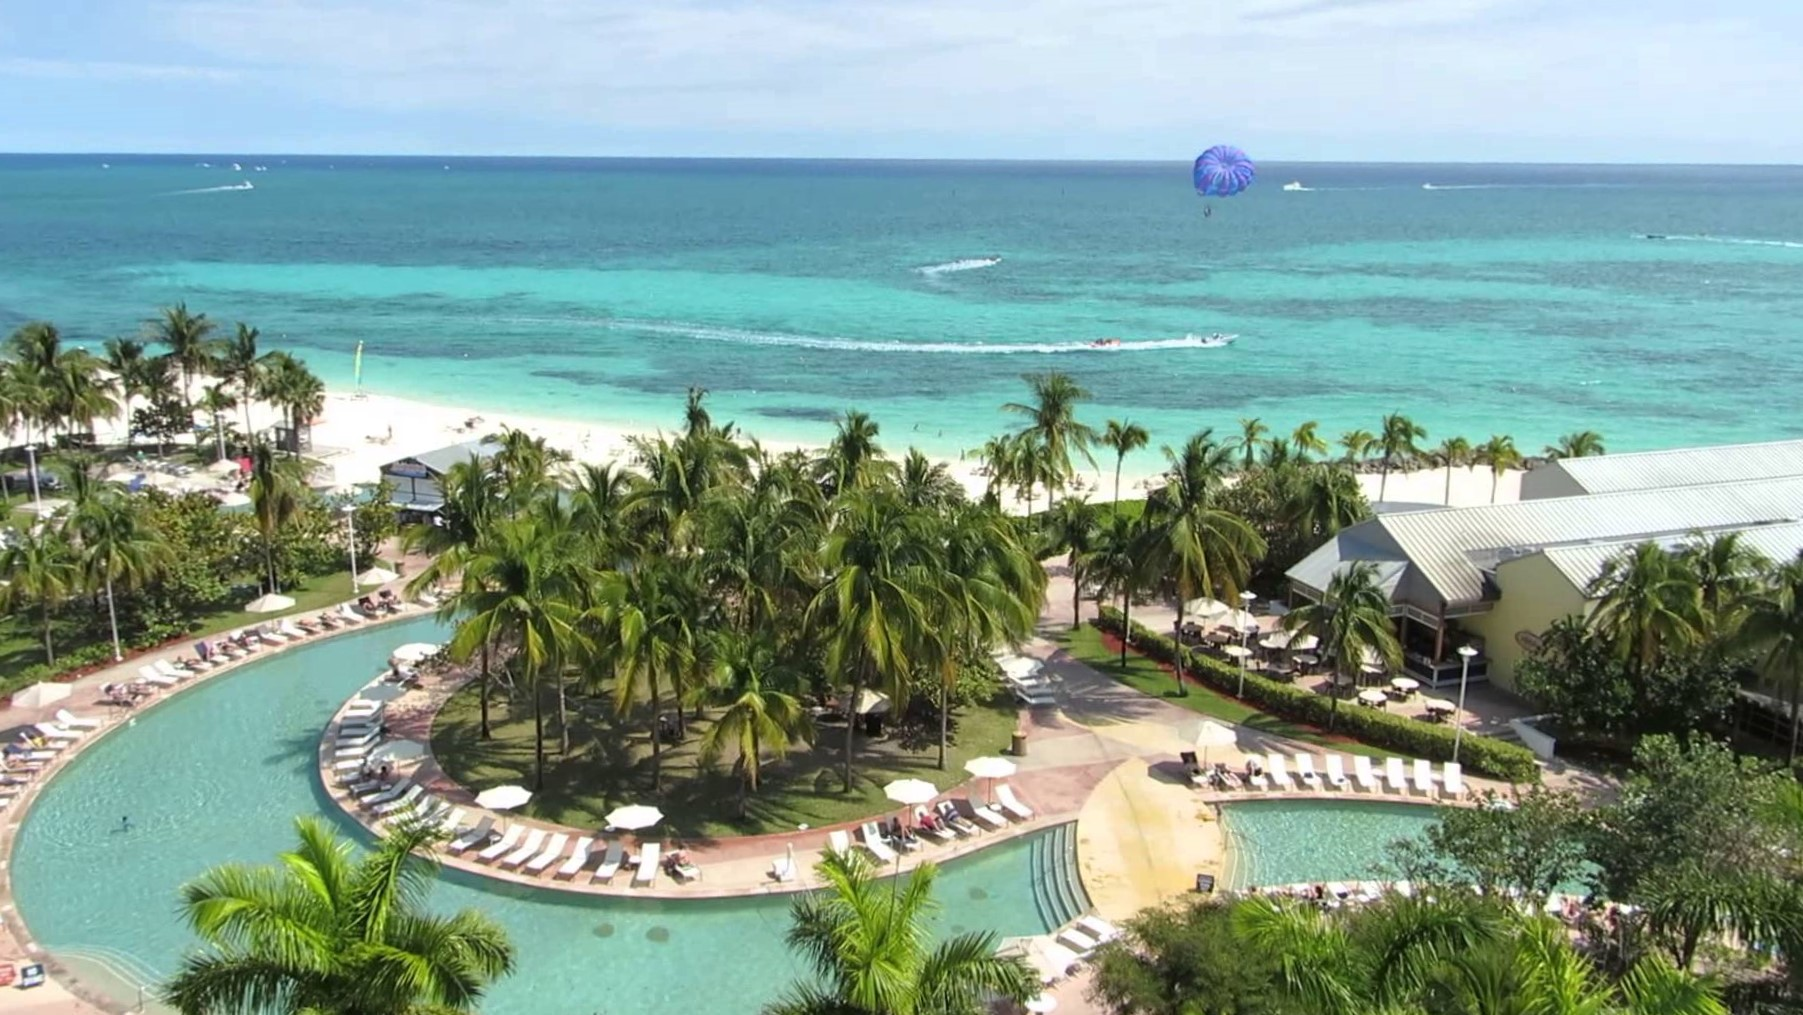 THE GRAND LUCAYAN RESORT ON GRAND BAHAMA ISLAND - Excellence Award by Hotels.com